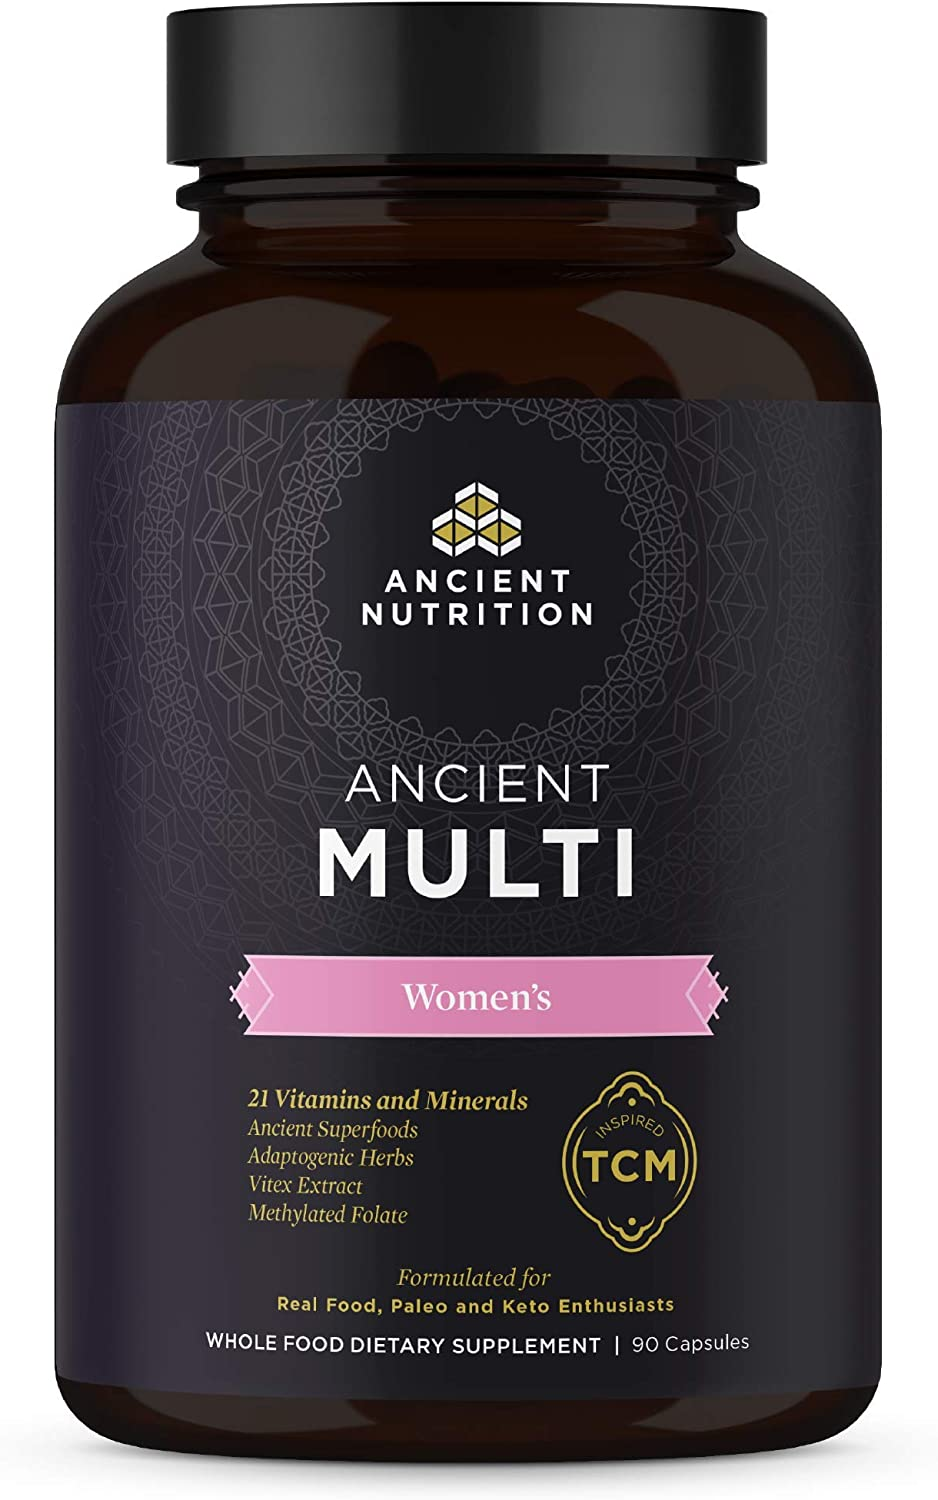 Multivitamin for Women Ancient Multi 2021new Complete Free Shipping shipping free Vitamins M and 21 Women's